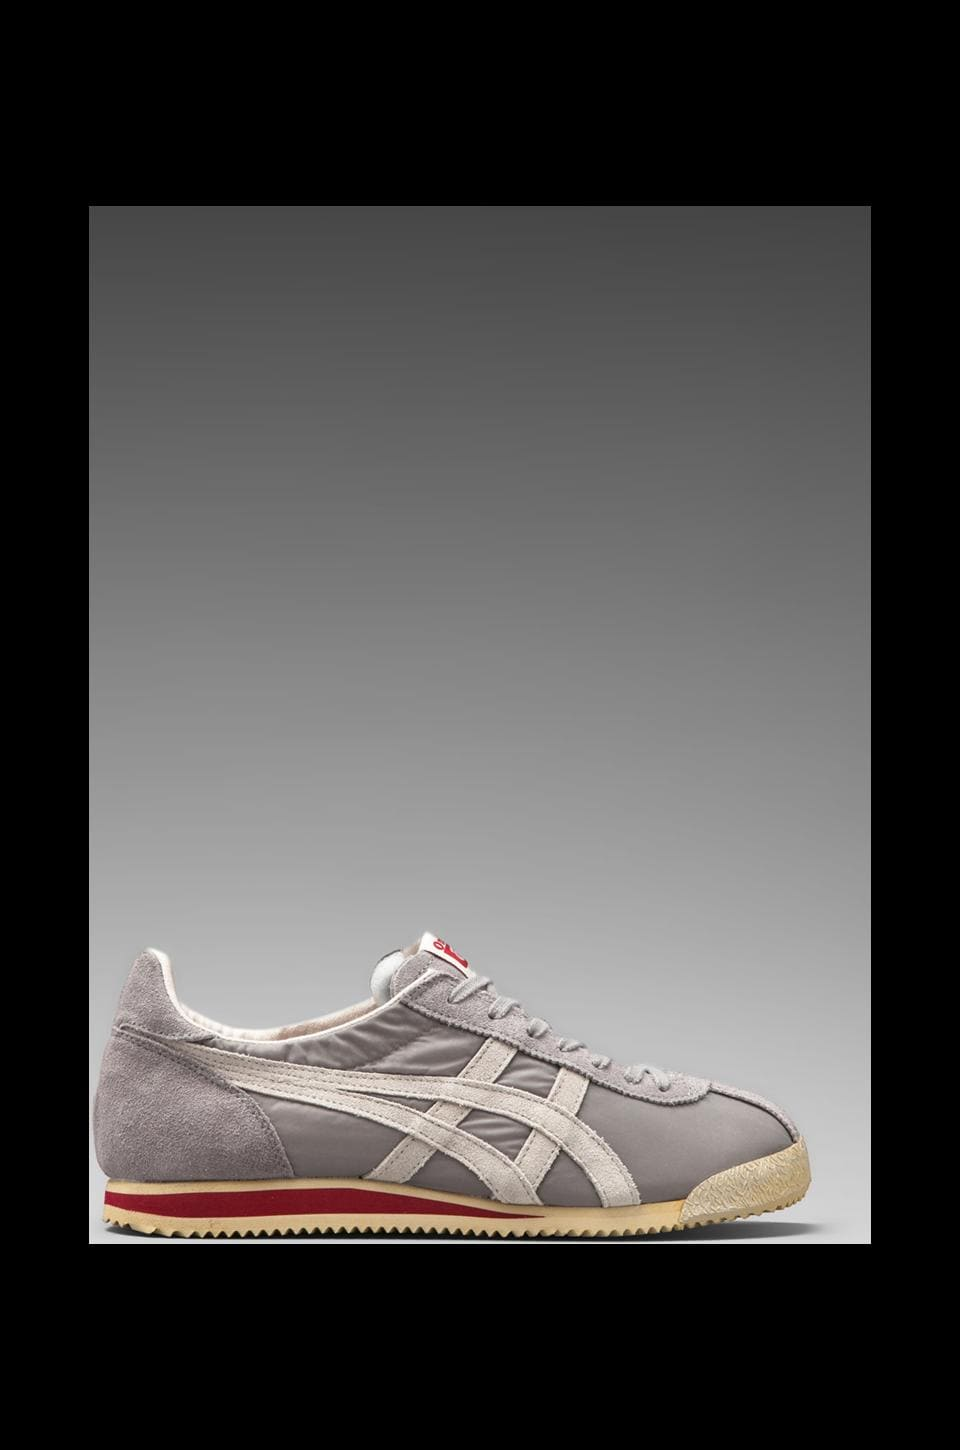 Onitsuka Tiger Tiger Corsair Vin + Tiger Corsair in Grey/Off-White